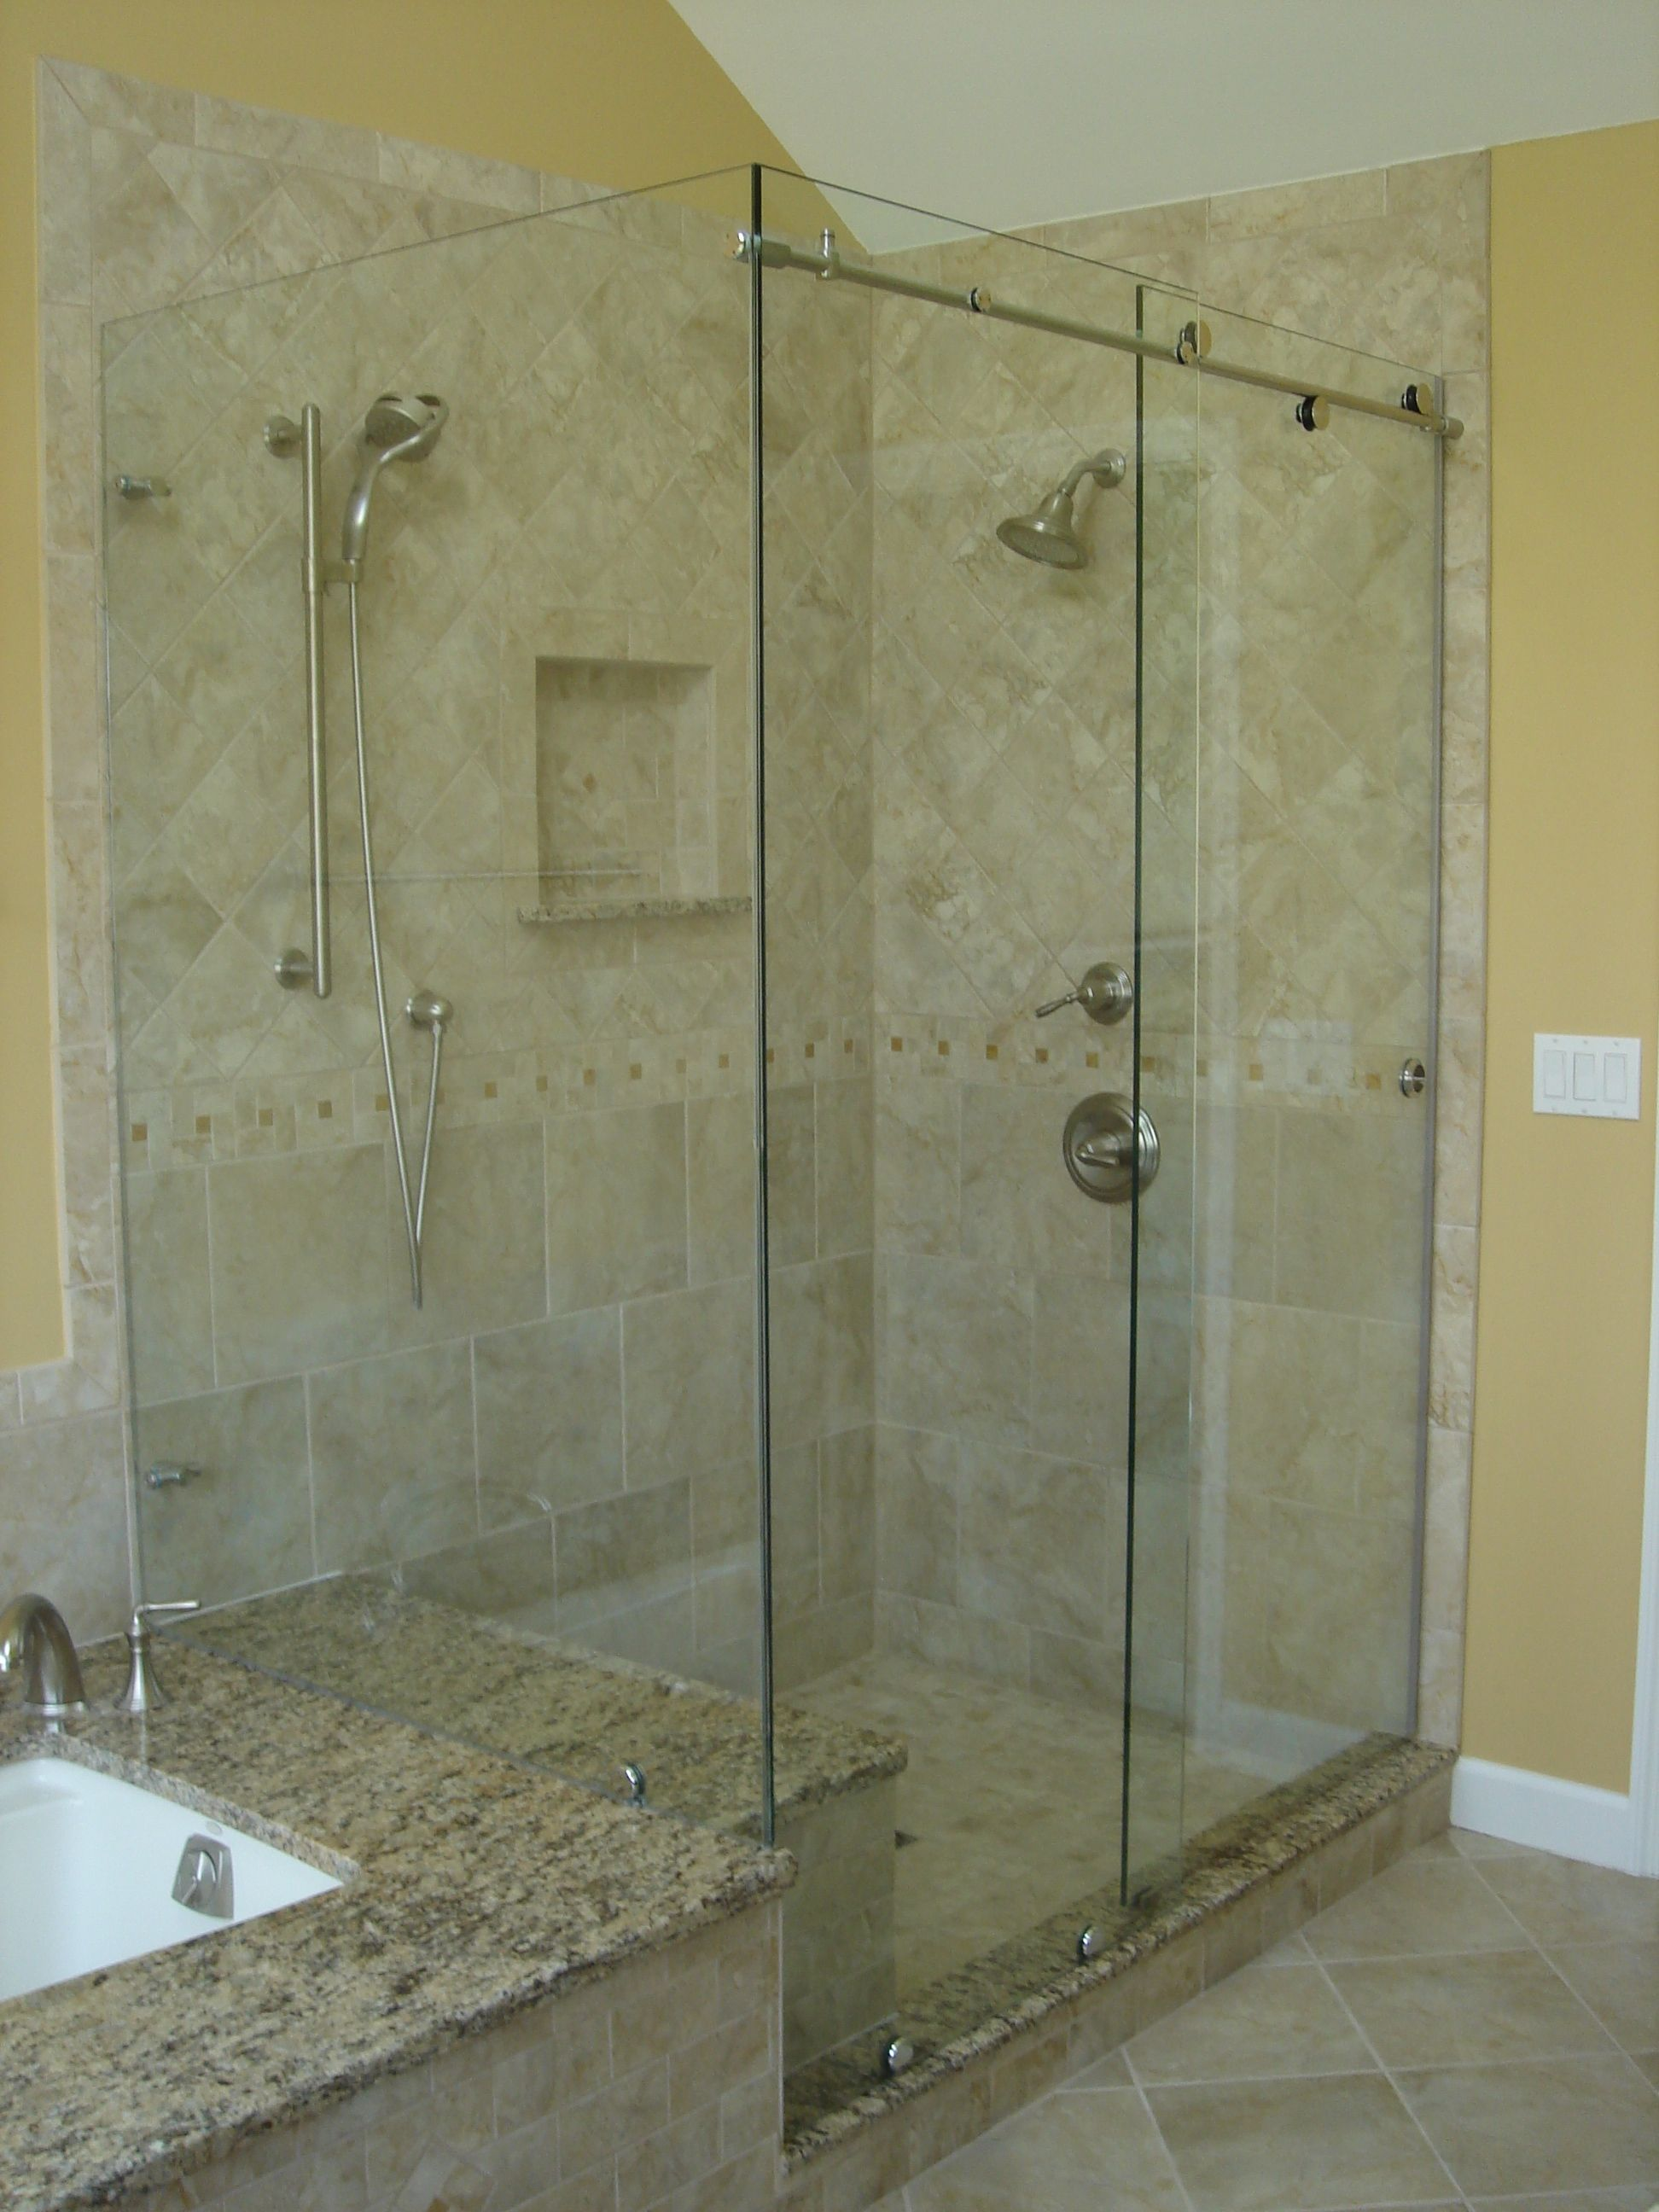 Shower glass door hinges - Glass Shower Doors Frameless New Cardinal Skyline Series Shower Door